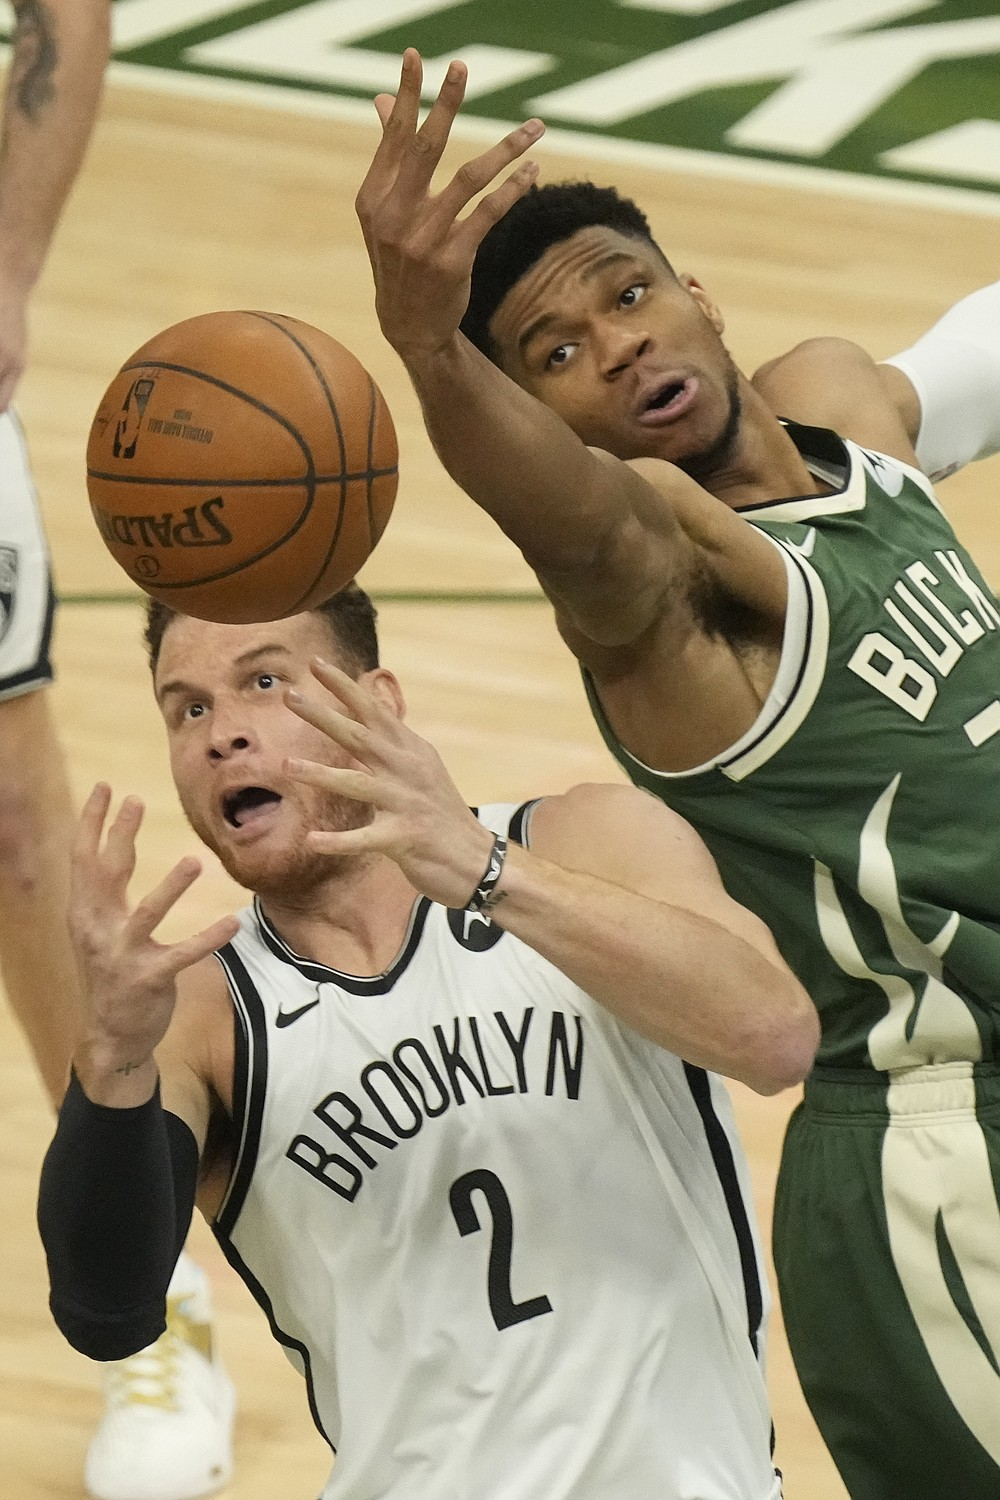 Brooklyn Nets' Blake Griffin and Milwaukee Bucks' Giannis Antetokounmpo go after a loose ball during the first half of Game 3 of the NBA Eastern Conference basketball semifinals game Thursday, June 10, 2021, in Milwaukee. (AP Photo/Morry Gash)